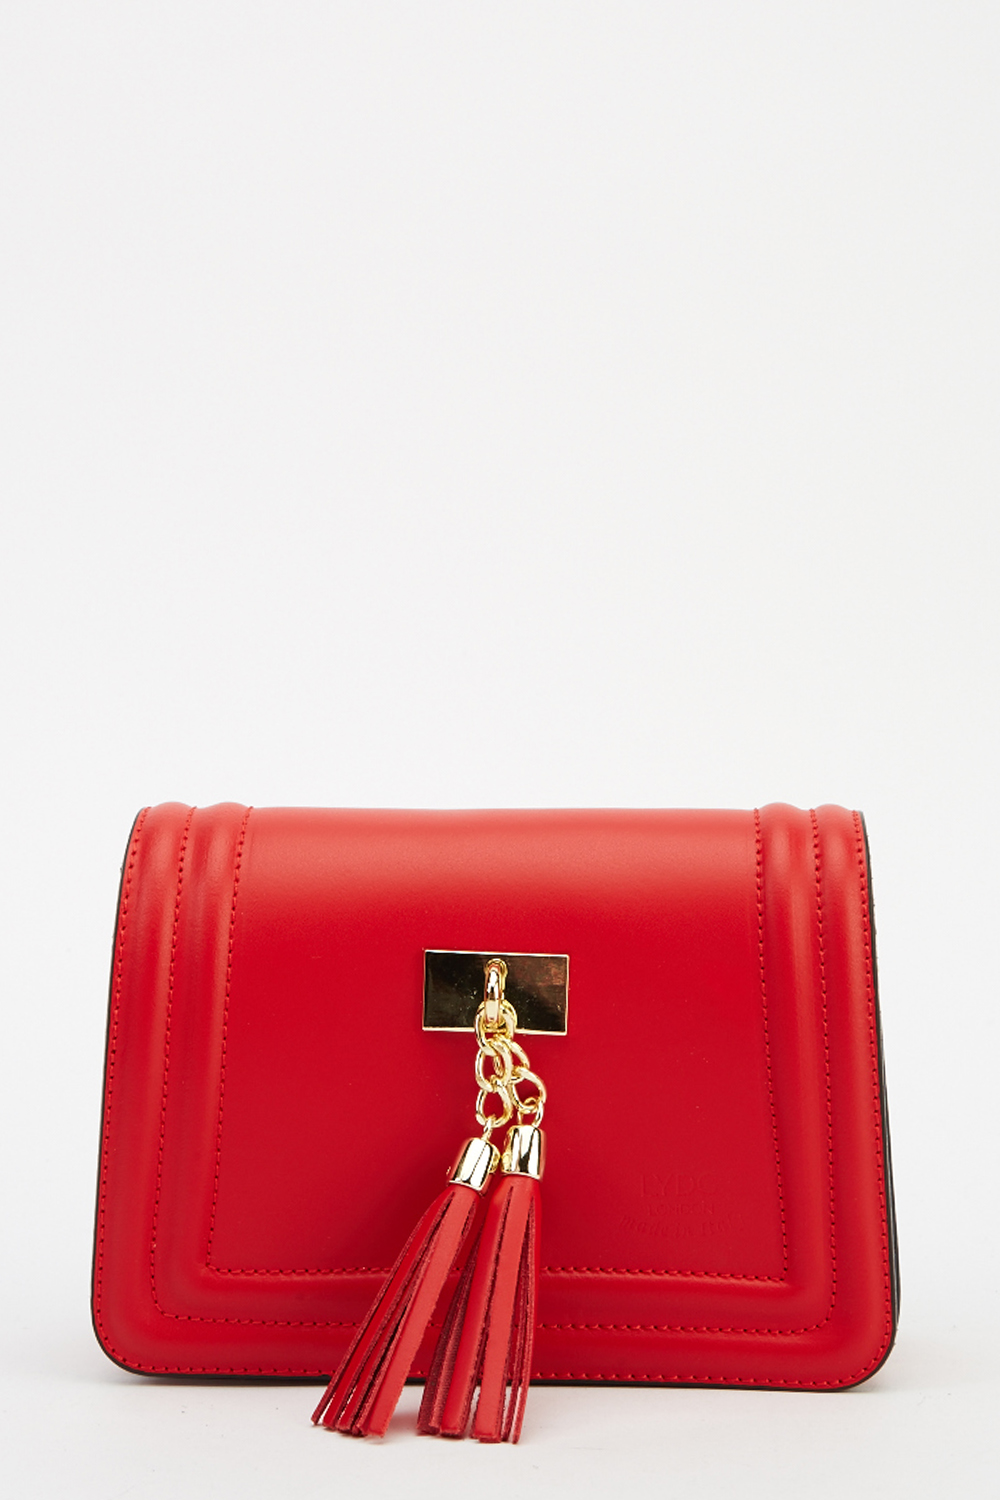 LYDC London Leather Small Shoulder Bag - Limited edition  ceede2d2b7